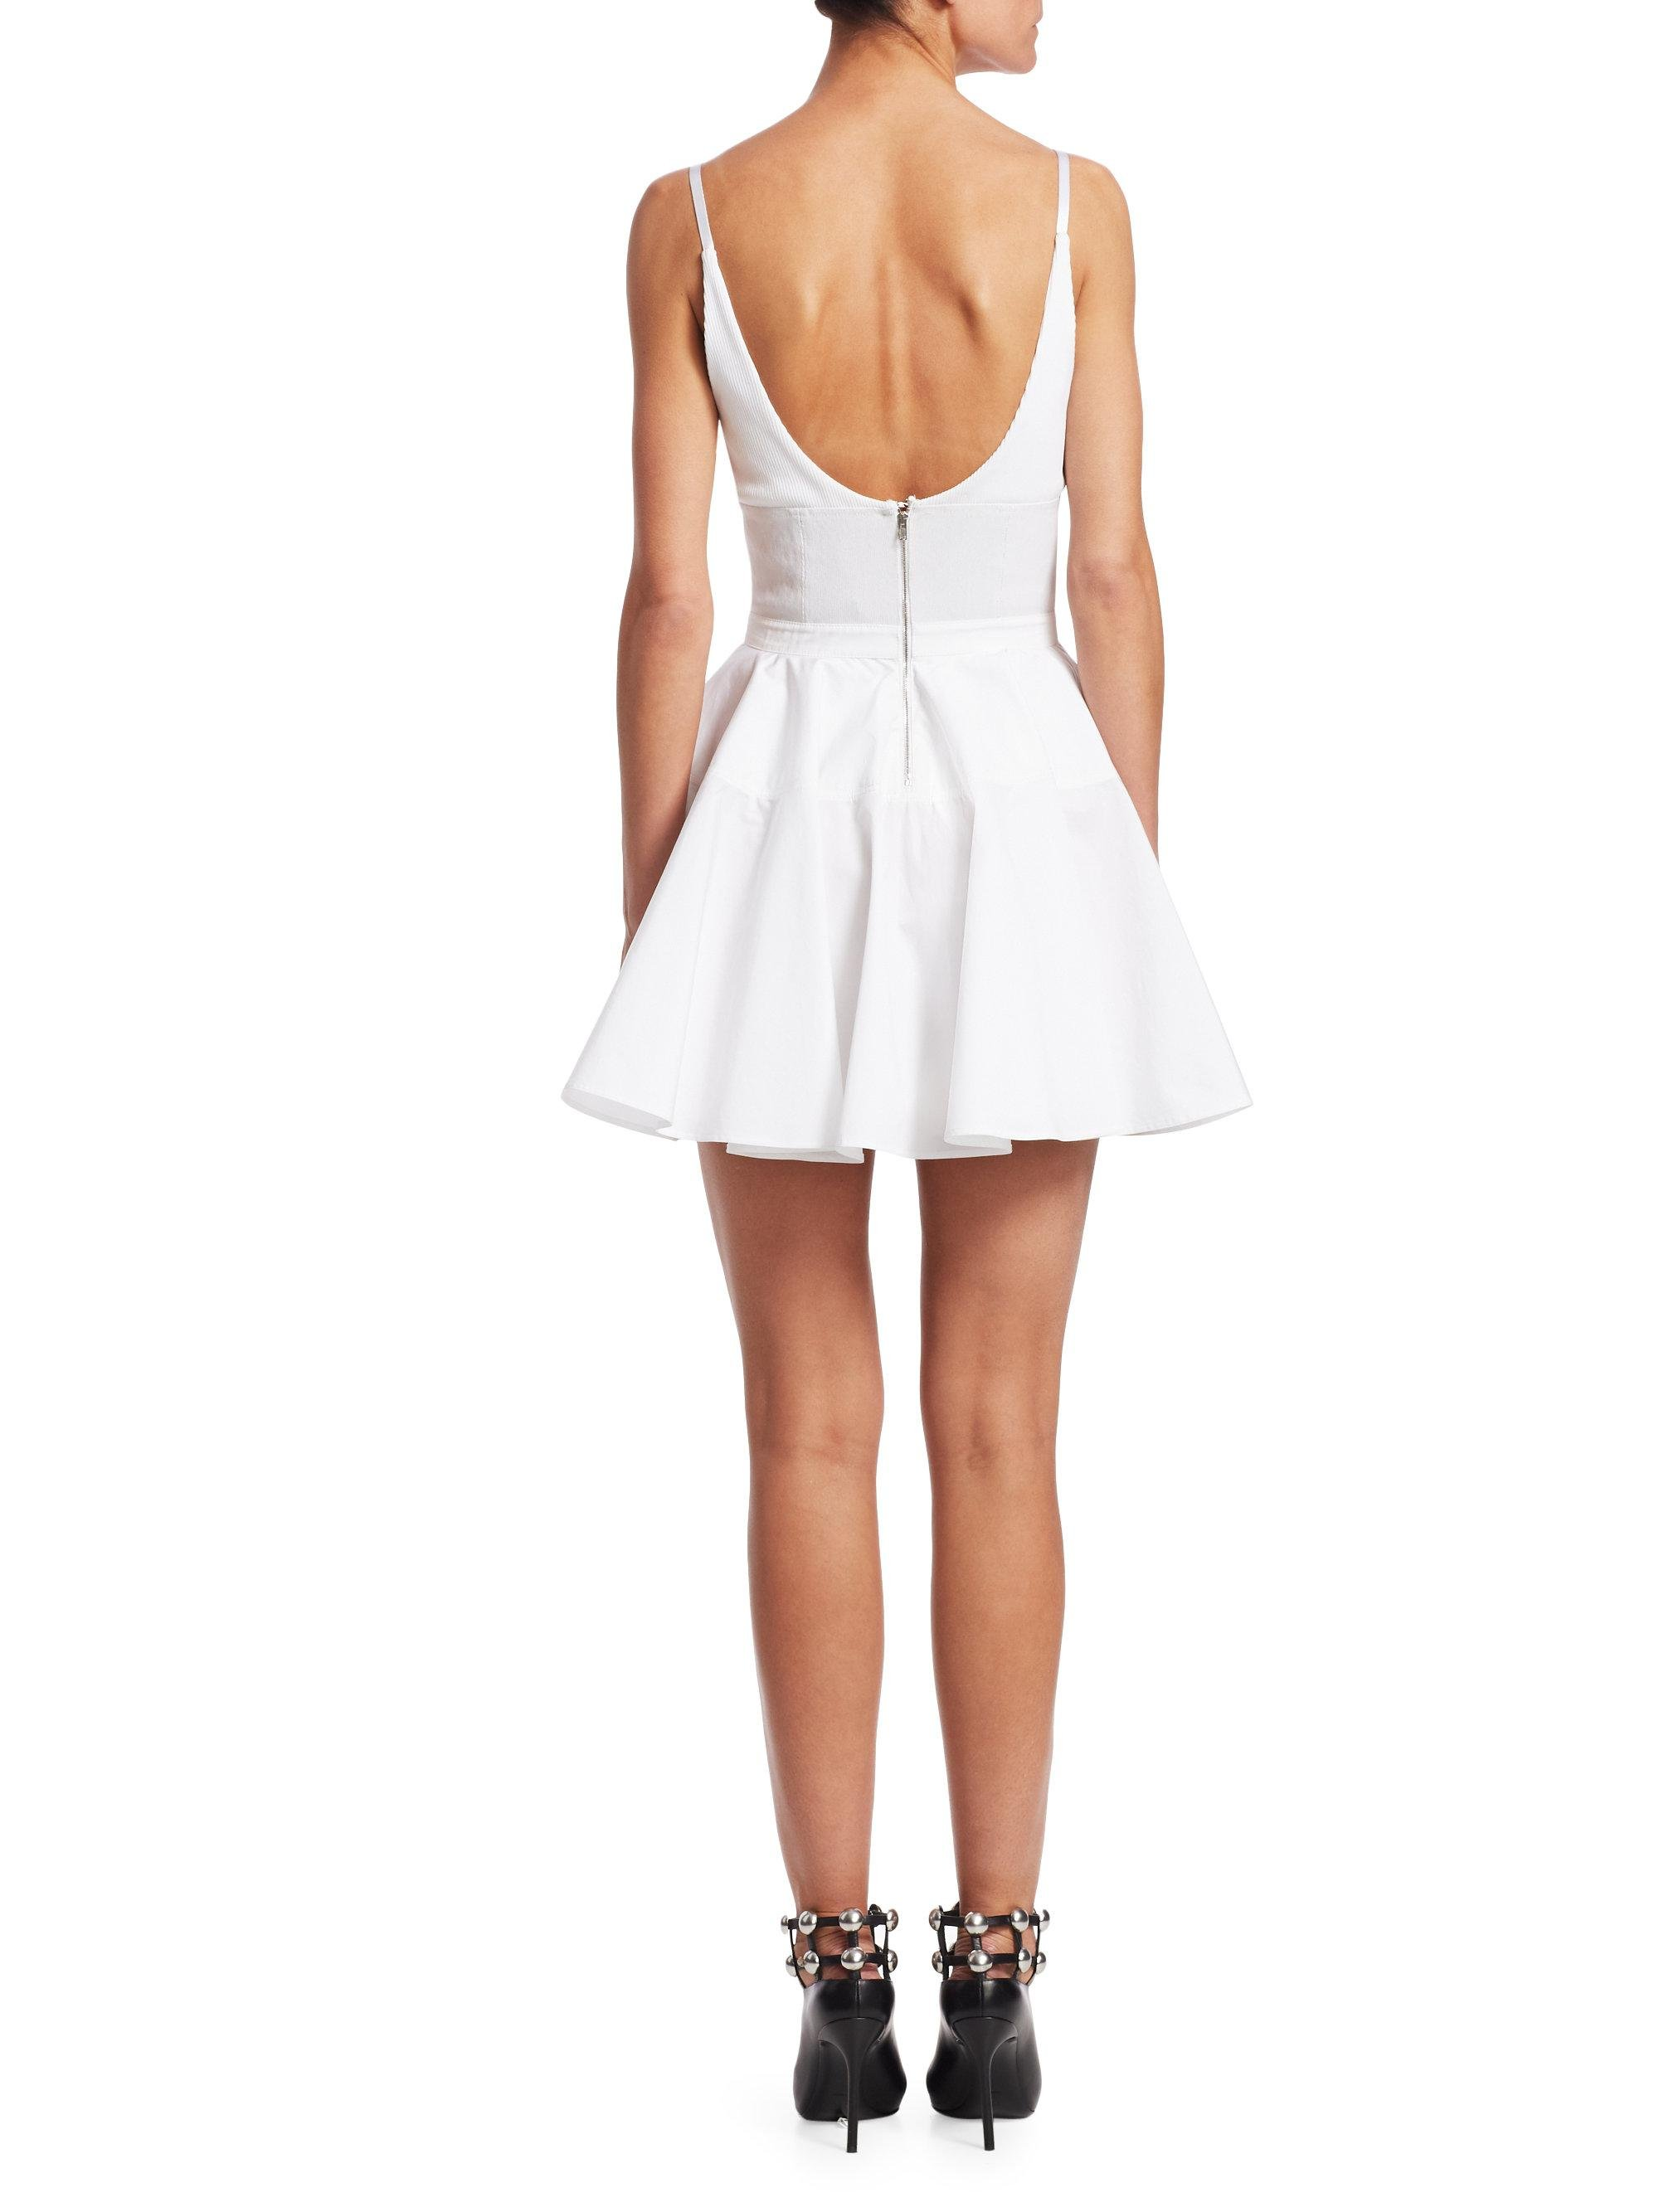 a2a7d2b5314 Alexander Wang Combo Fit-and-flare Dress in White - Lyst